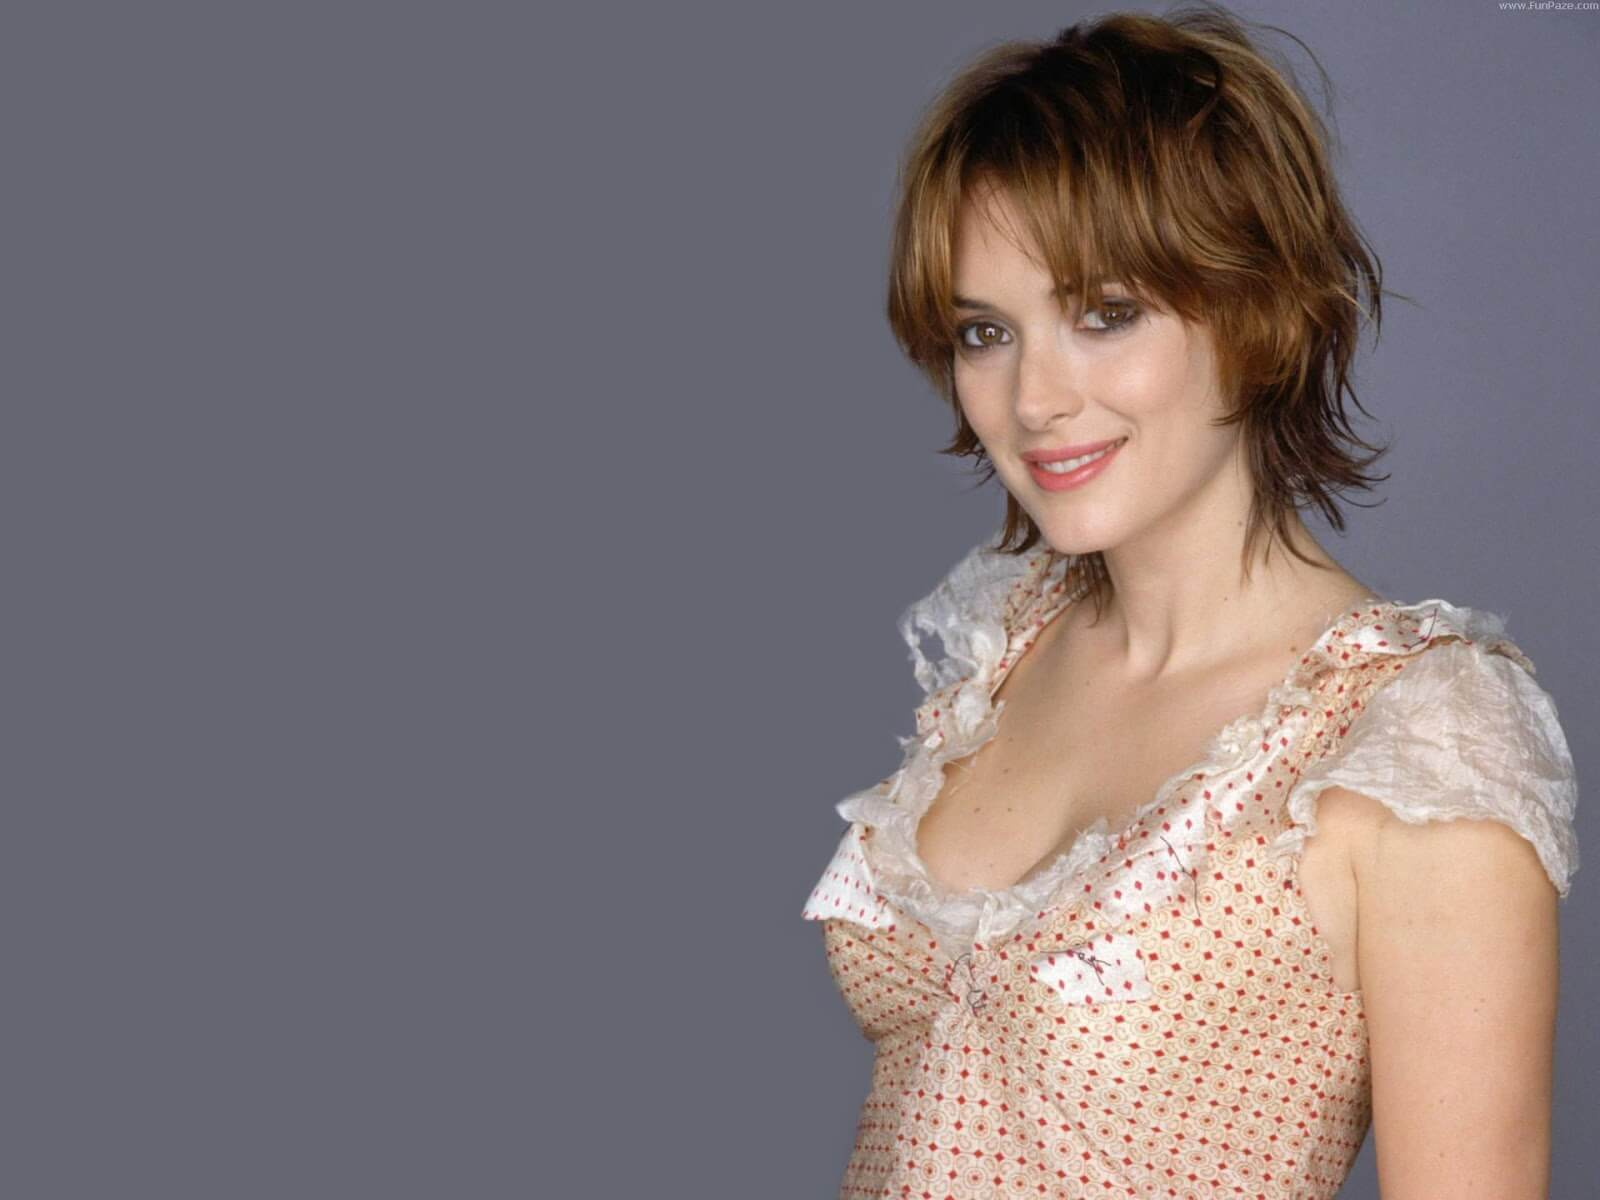 WINONA RYDER cleavage picture